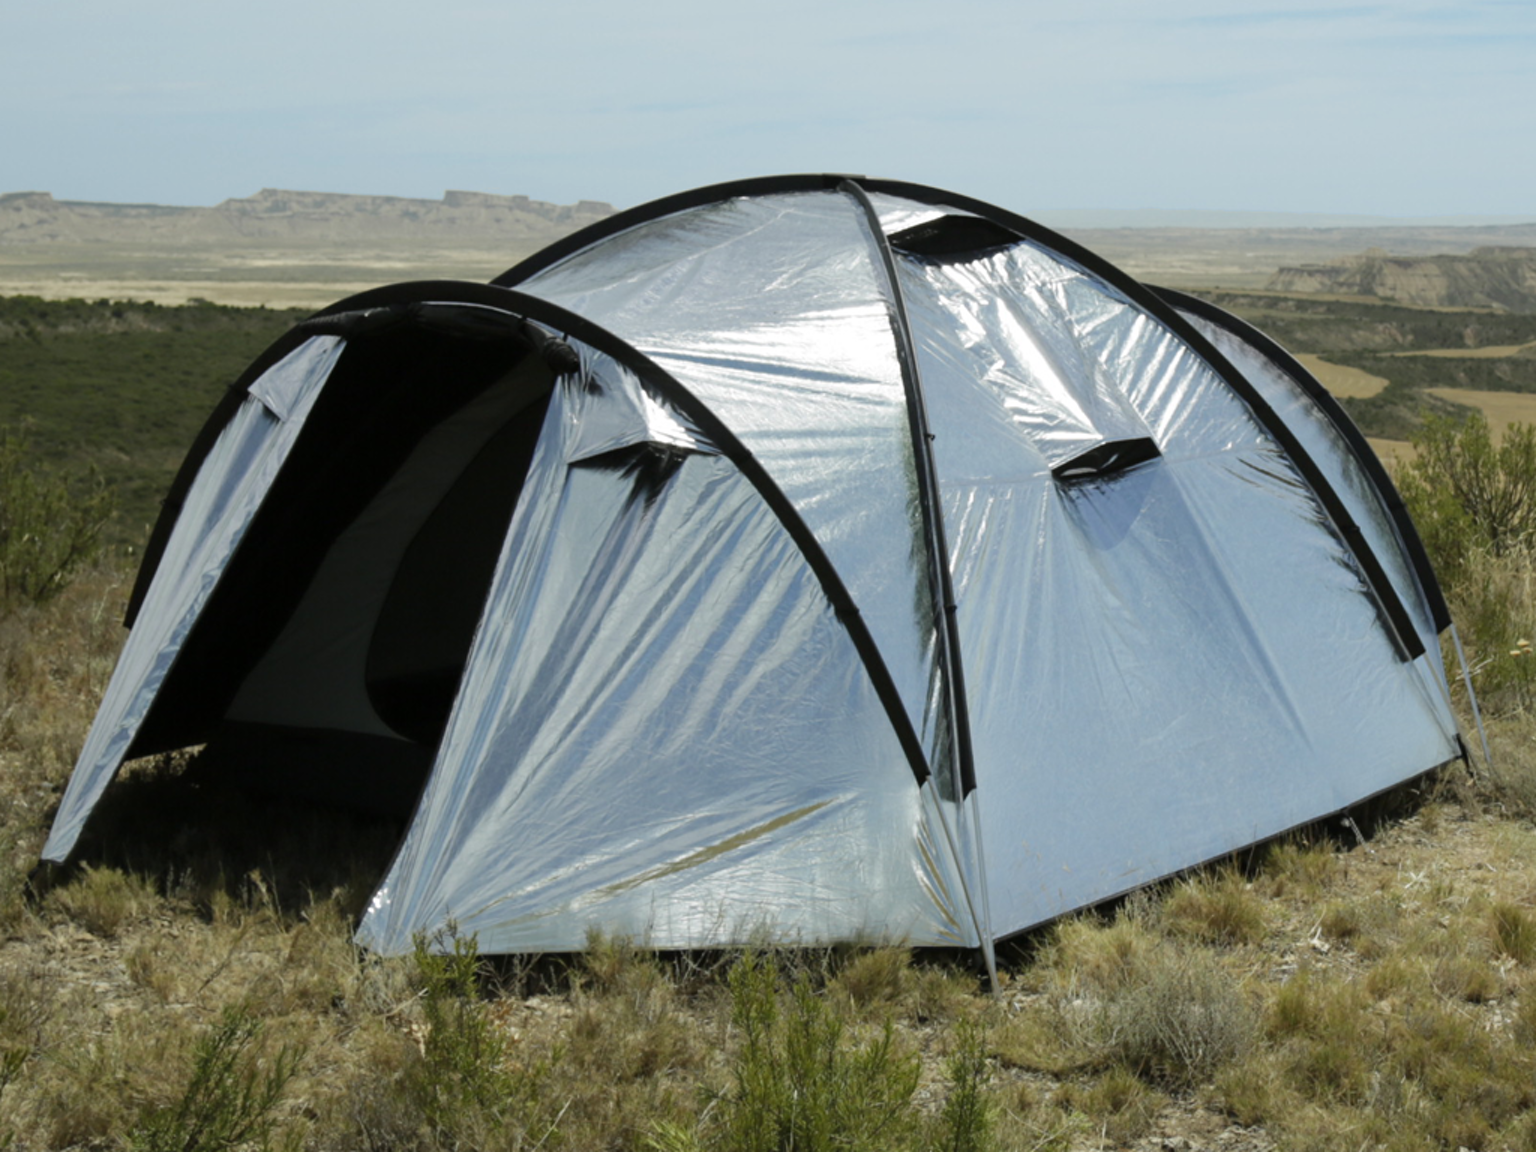 Ultra-reflective fly fabric + built-in fans = the best possible